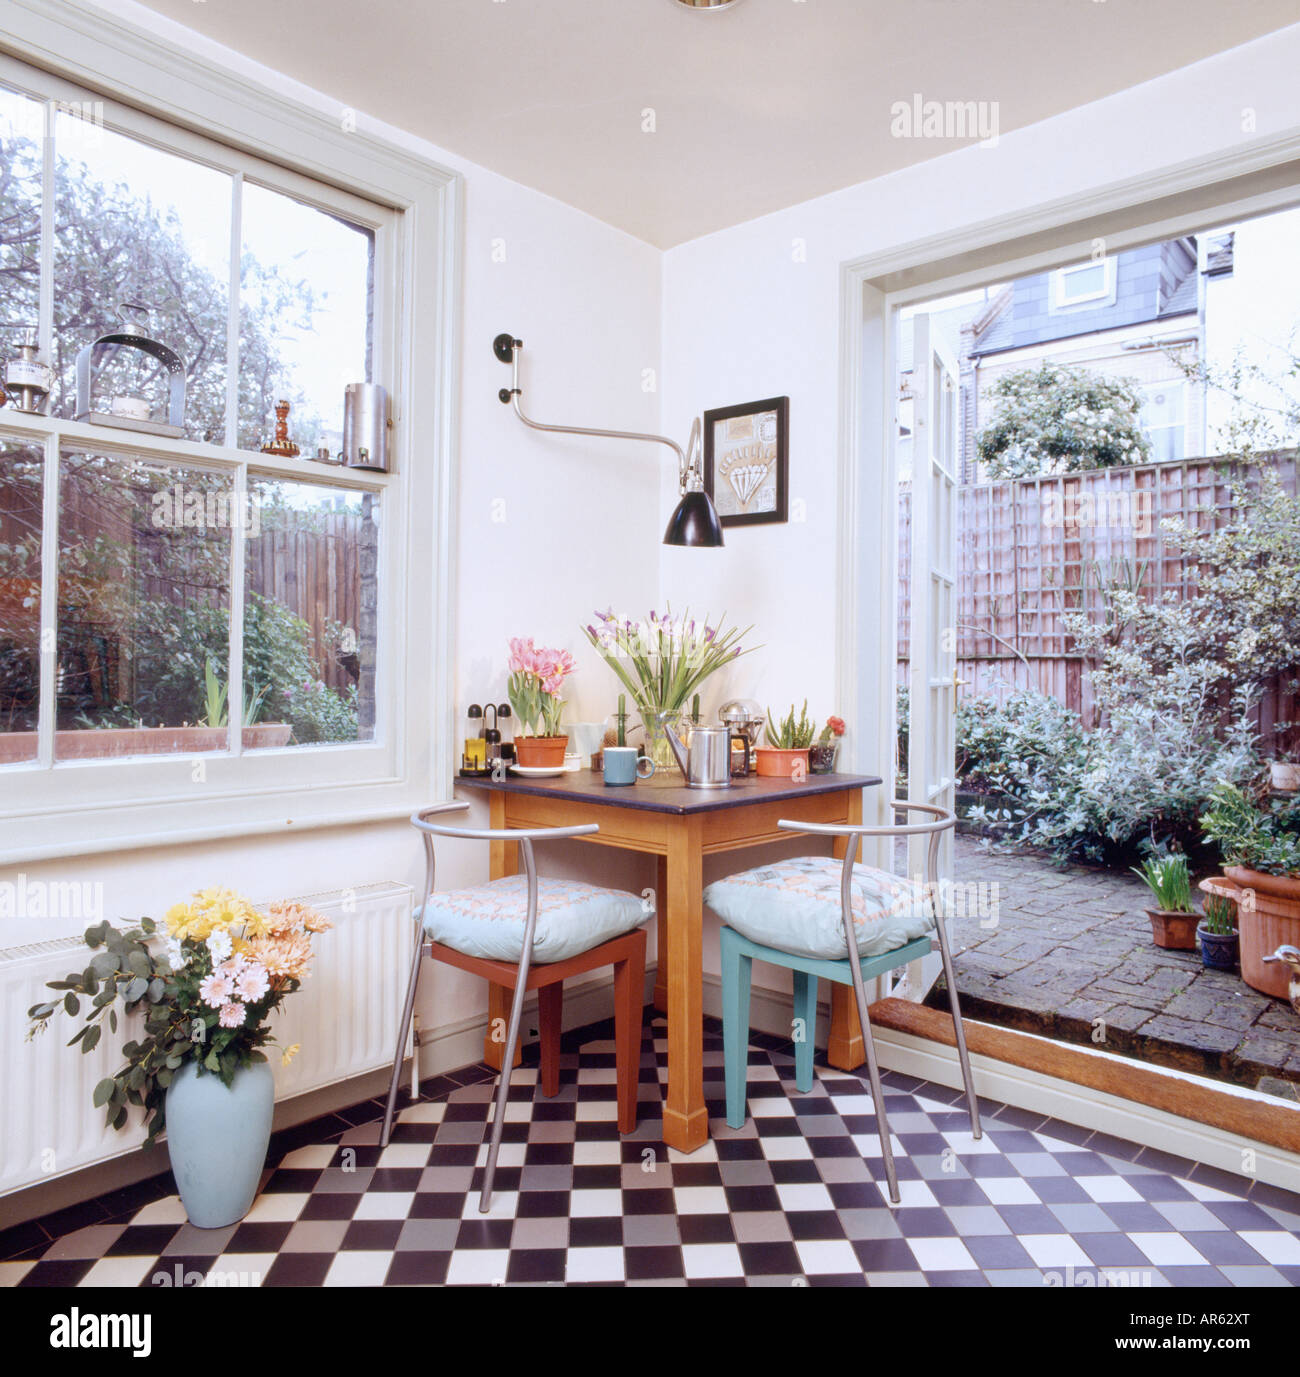 black and white tiled floor in small dining room extension with